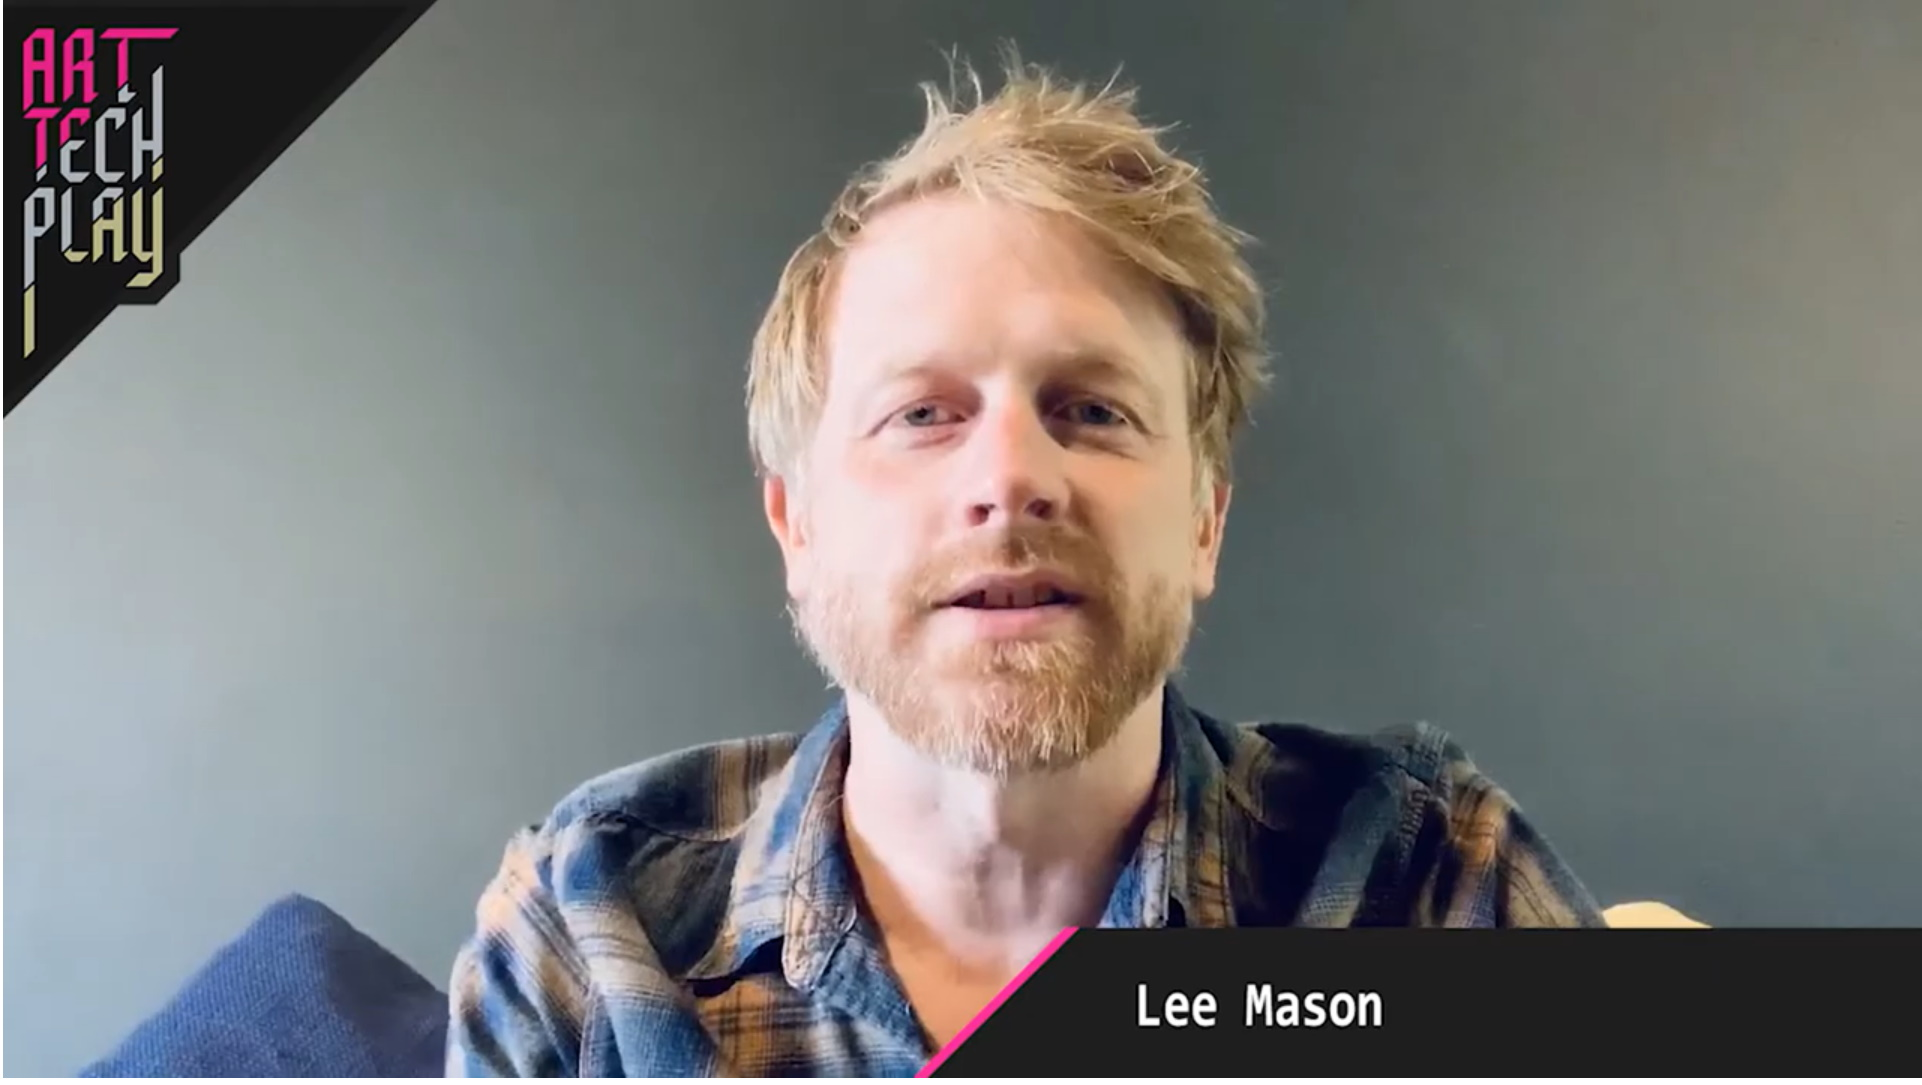 Lee Mason on cryptoart in VR